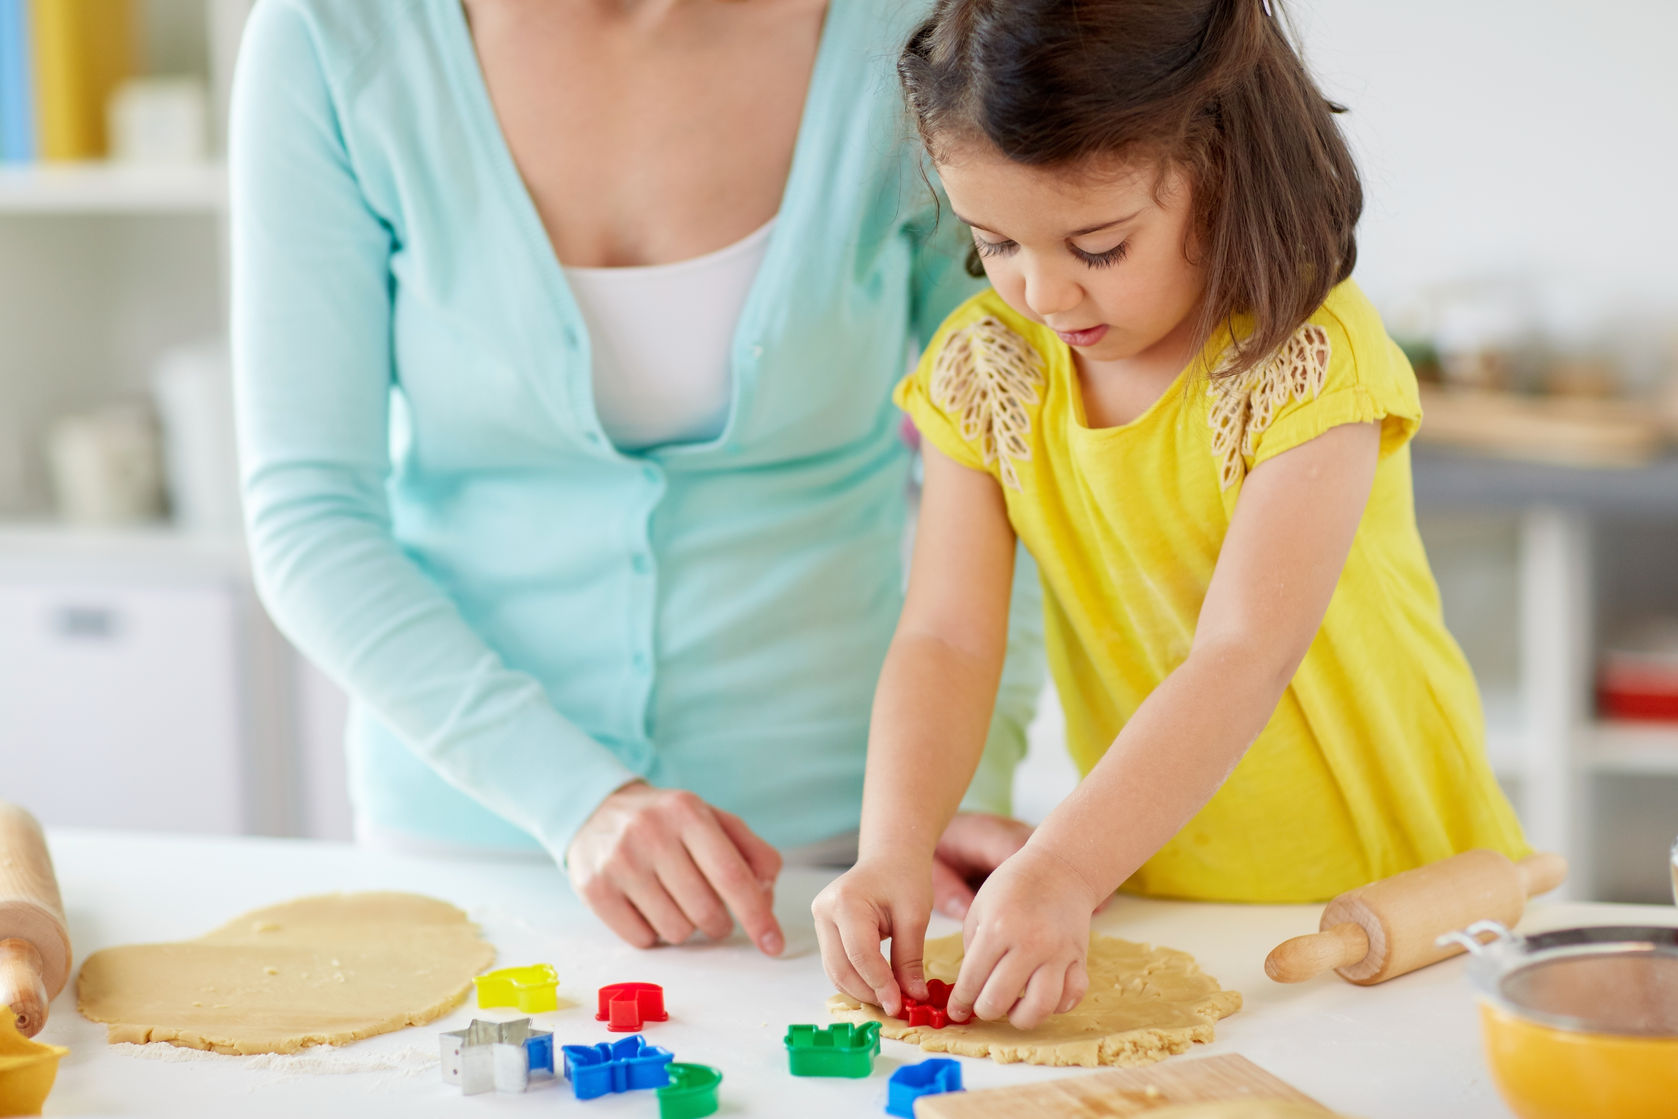 Numeracy Skills - Cooking with a child can help improve measuring and counting skills